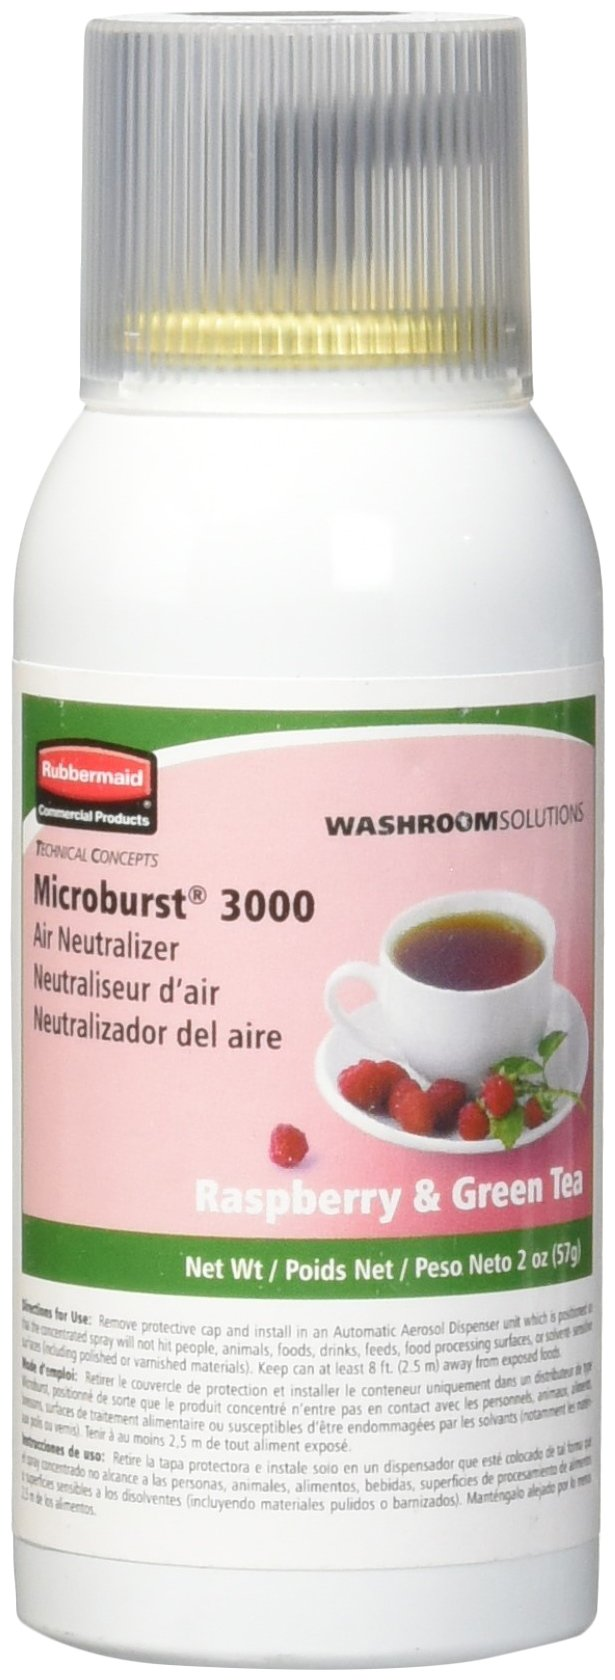 Rubbermaid Commercial Refill for Microburst 3000 Automatic Odor Control System, Rasberry Green Tea, FG750362